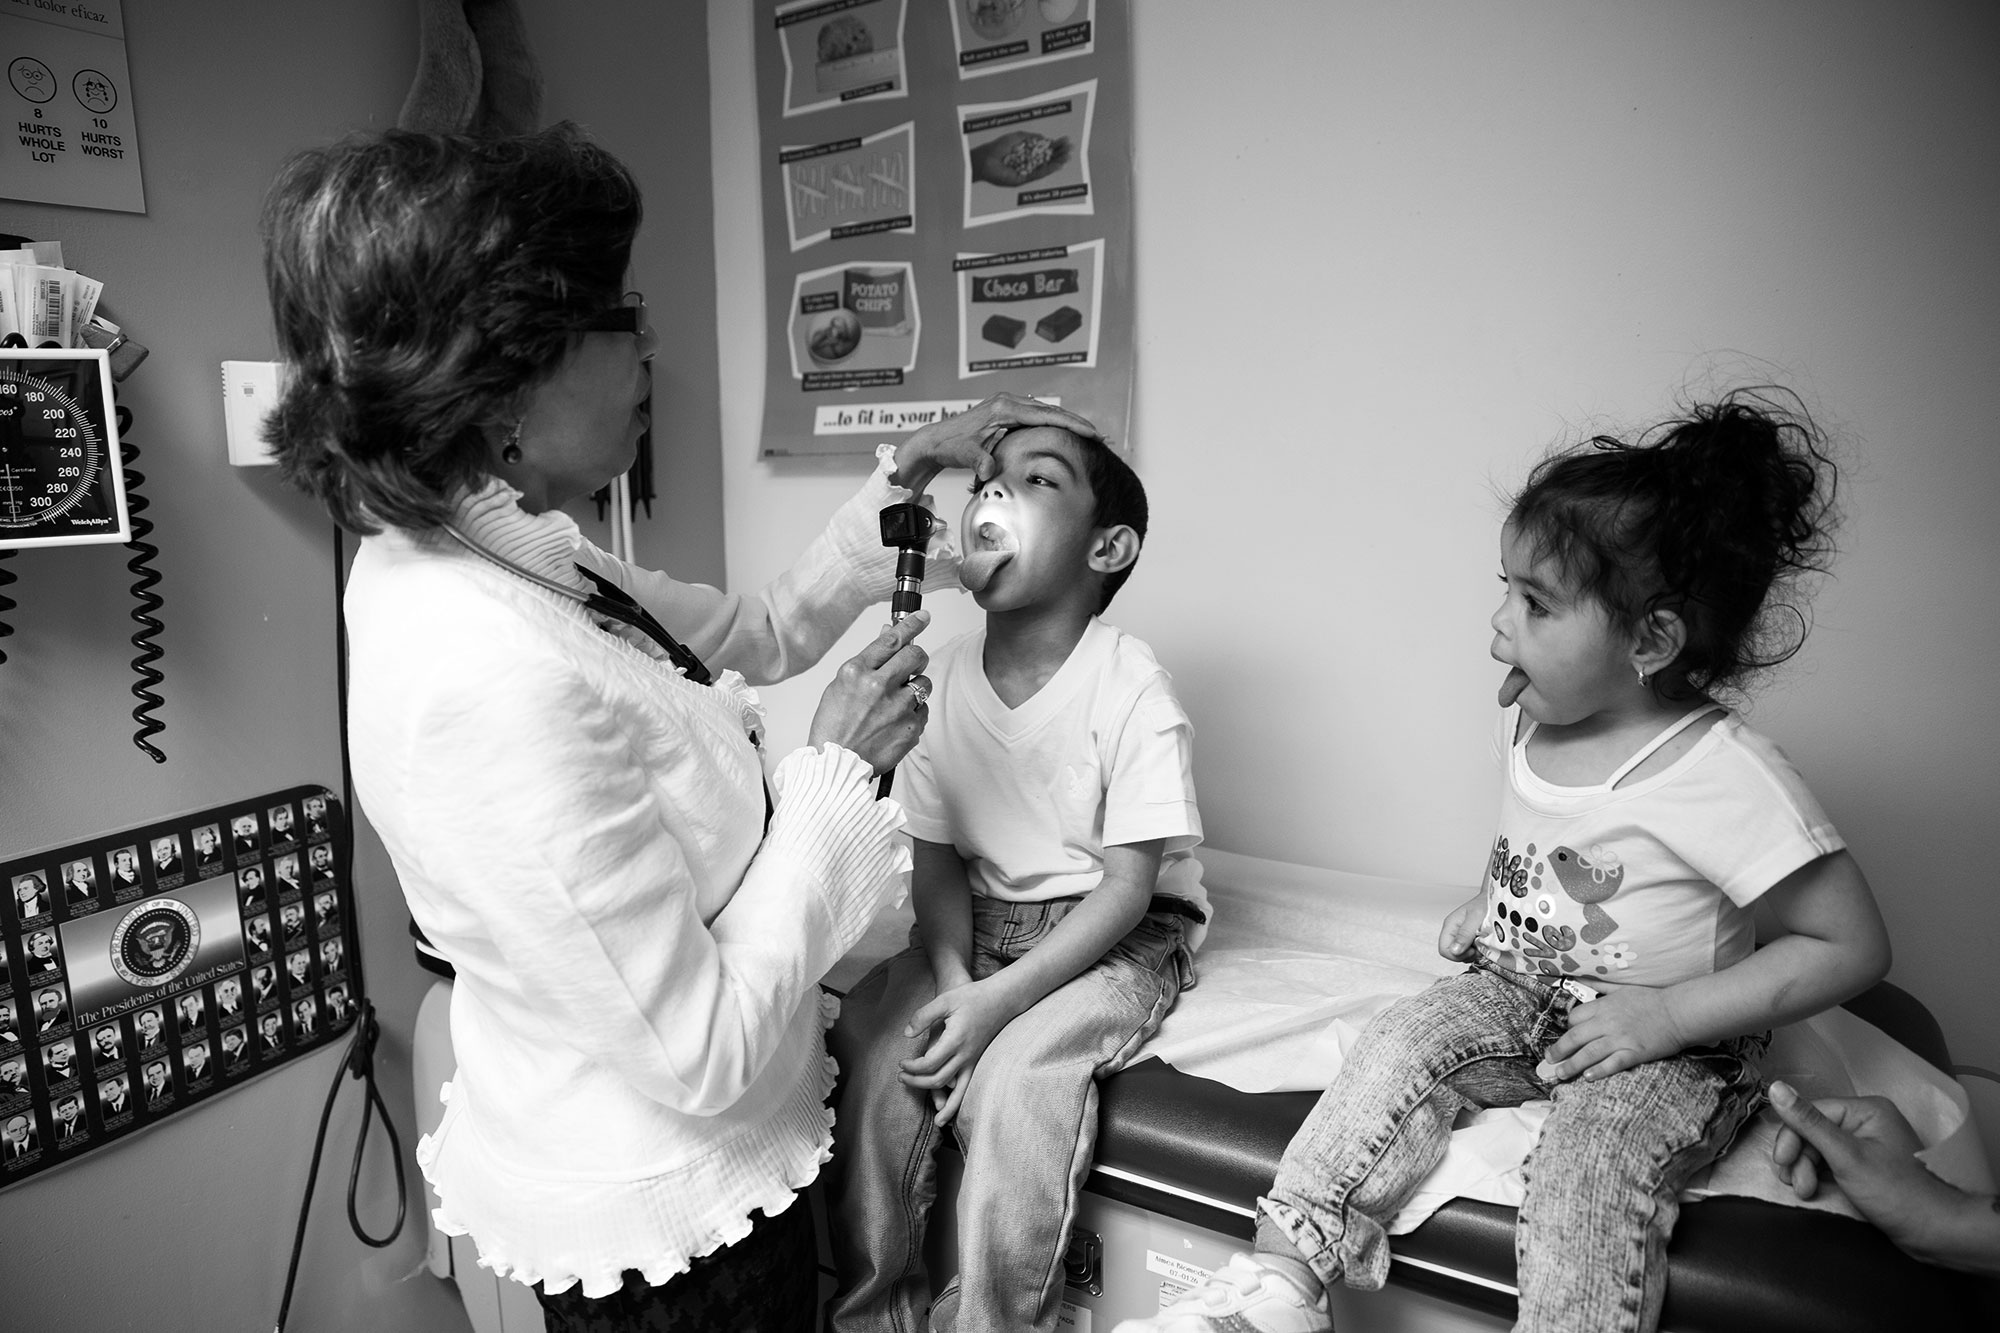 """Dr. Acklema Mohammad, the head pediatrician at the Urban Health Plan in the South Bronx, helped develop the Asthma Action Plan, a national """"go-to"""" guideline for asthma patients to understand how and when to take their asthma medication. Dr. Mohammad gives a check-up to 5 year old Asthma patient Kelvin Torres and his two year old sister, Janalisse.  Originally published by NBC News & NBC Dateline, as part of their story   'Mold, Mice and Zip Codes: Inside The Childhood Asthma Epidemic.'"""